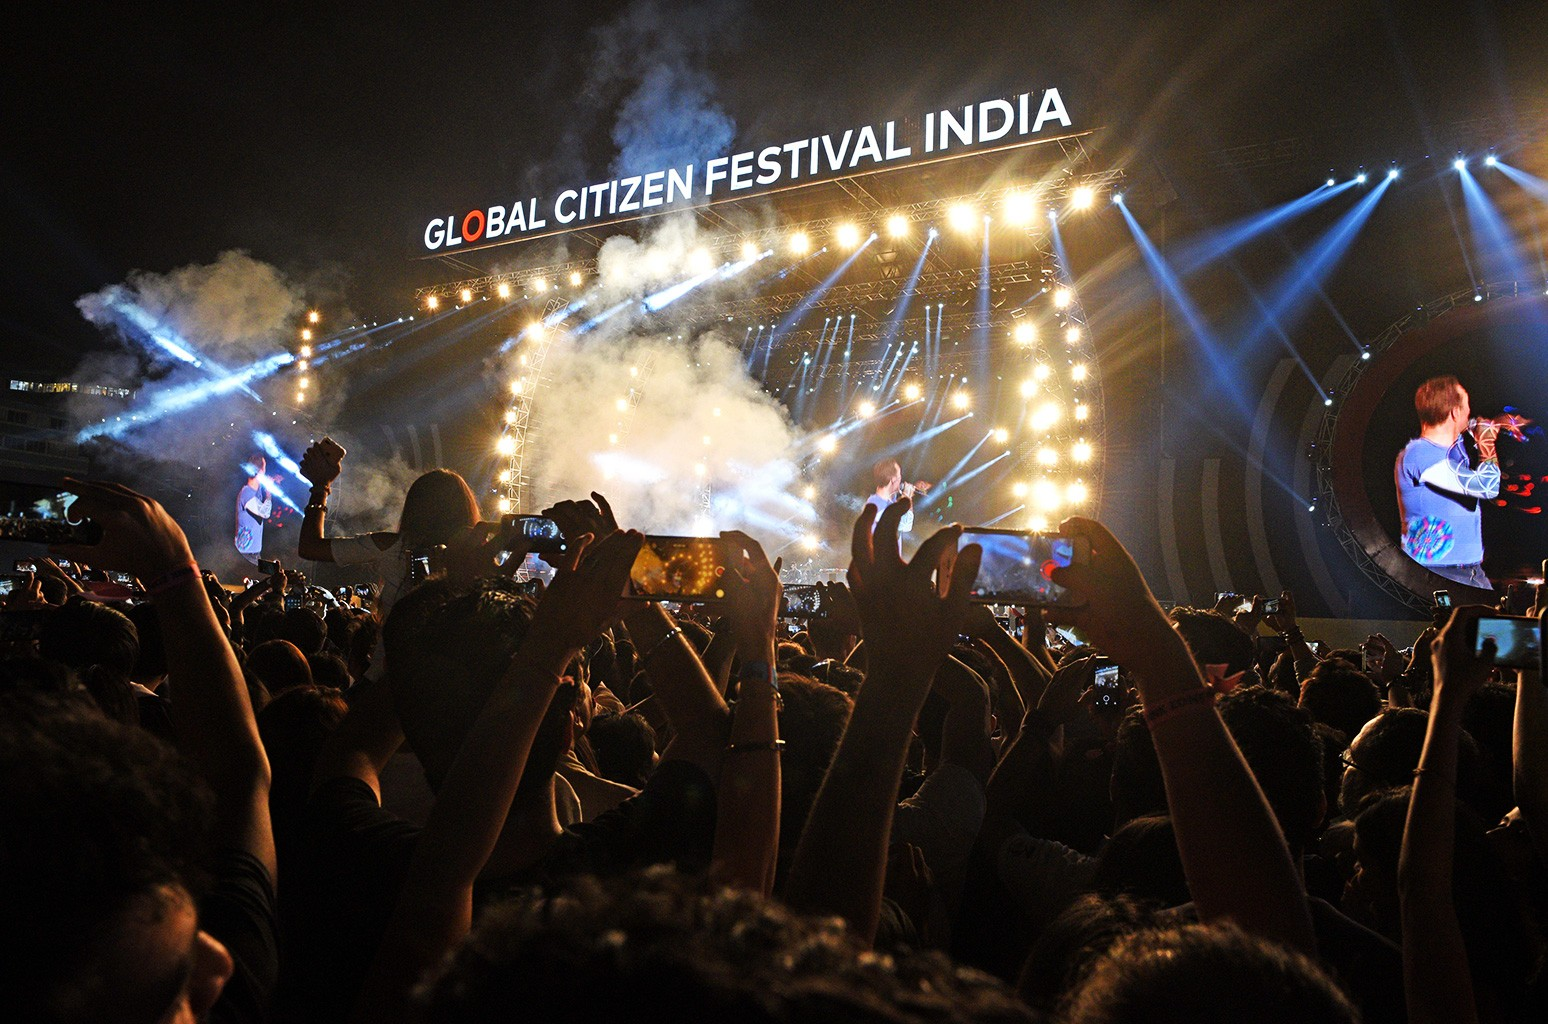 Coldplay performs at Global Citizen India at MMRDA Ground, BKC on Nov. 19, 2016 in Mumbai, India.